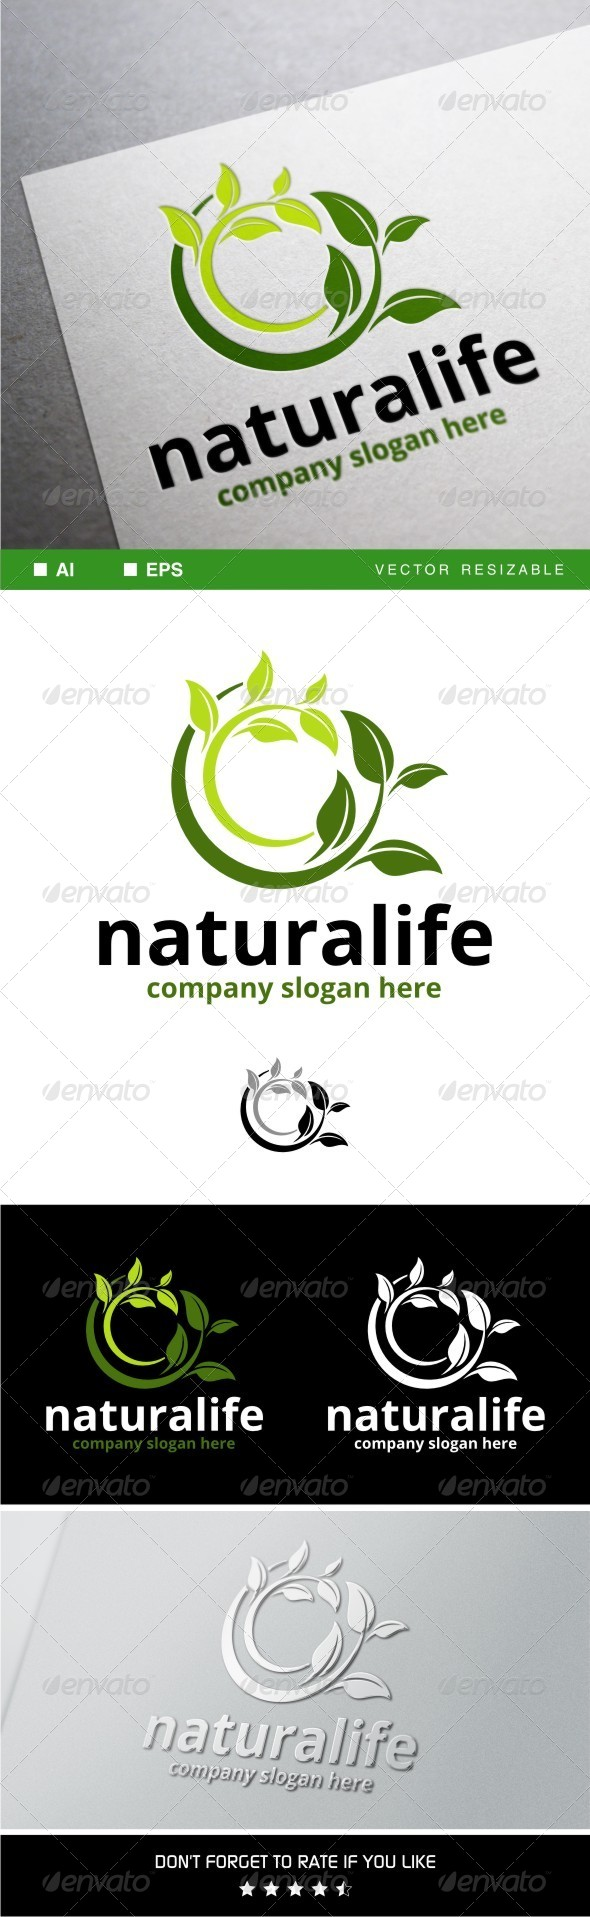 GraphicRiver Naturalife Logo Template 7949487